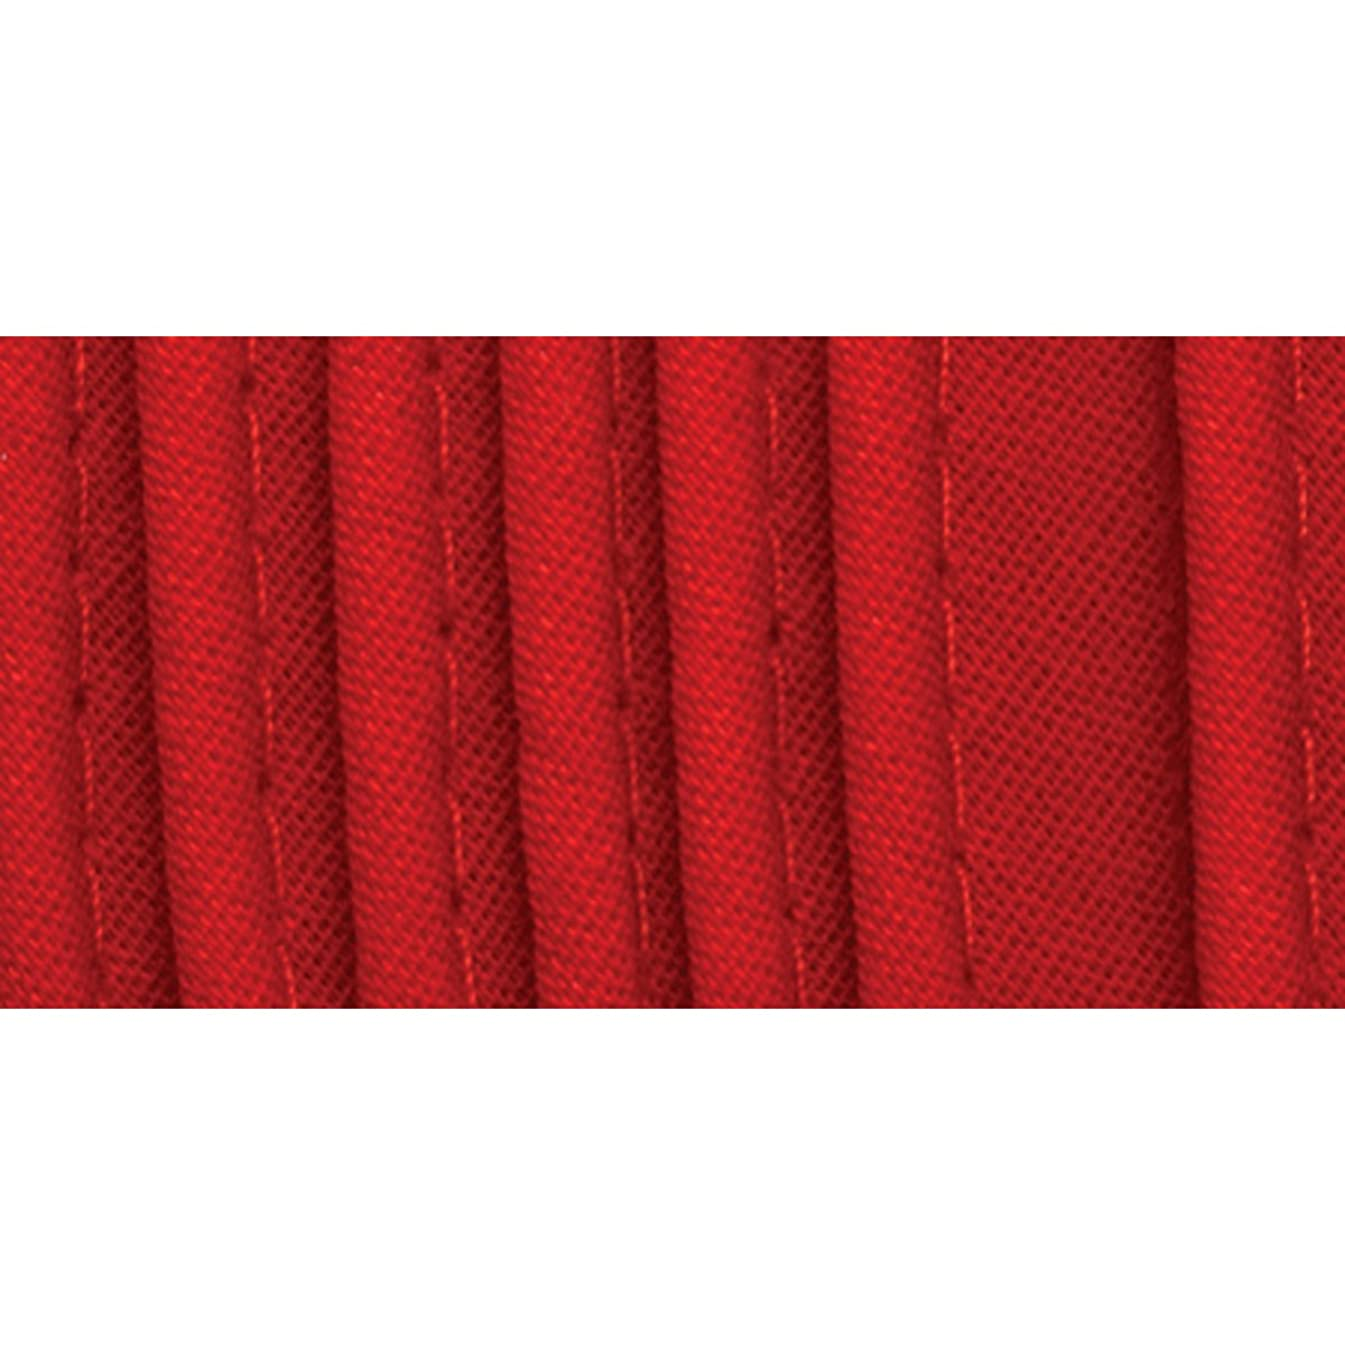 Wrights 117-303-065 Maxi Piping Bias Tape, Red, 2.5-Yard